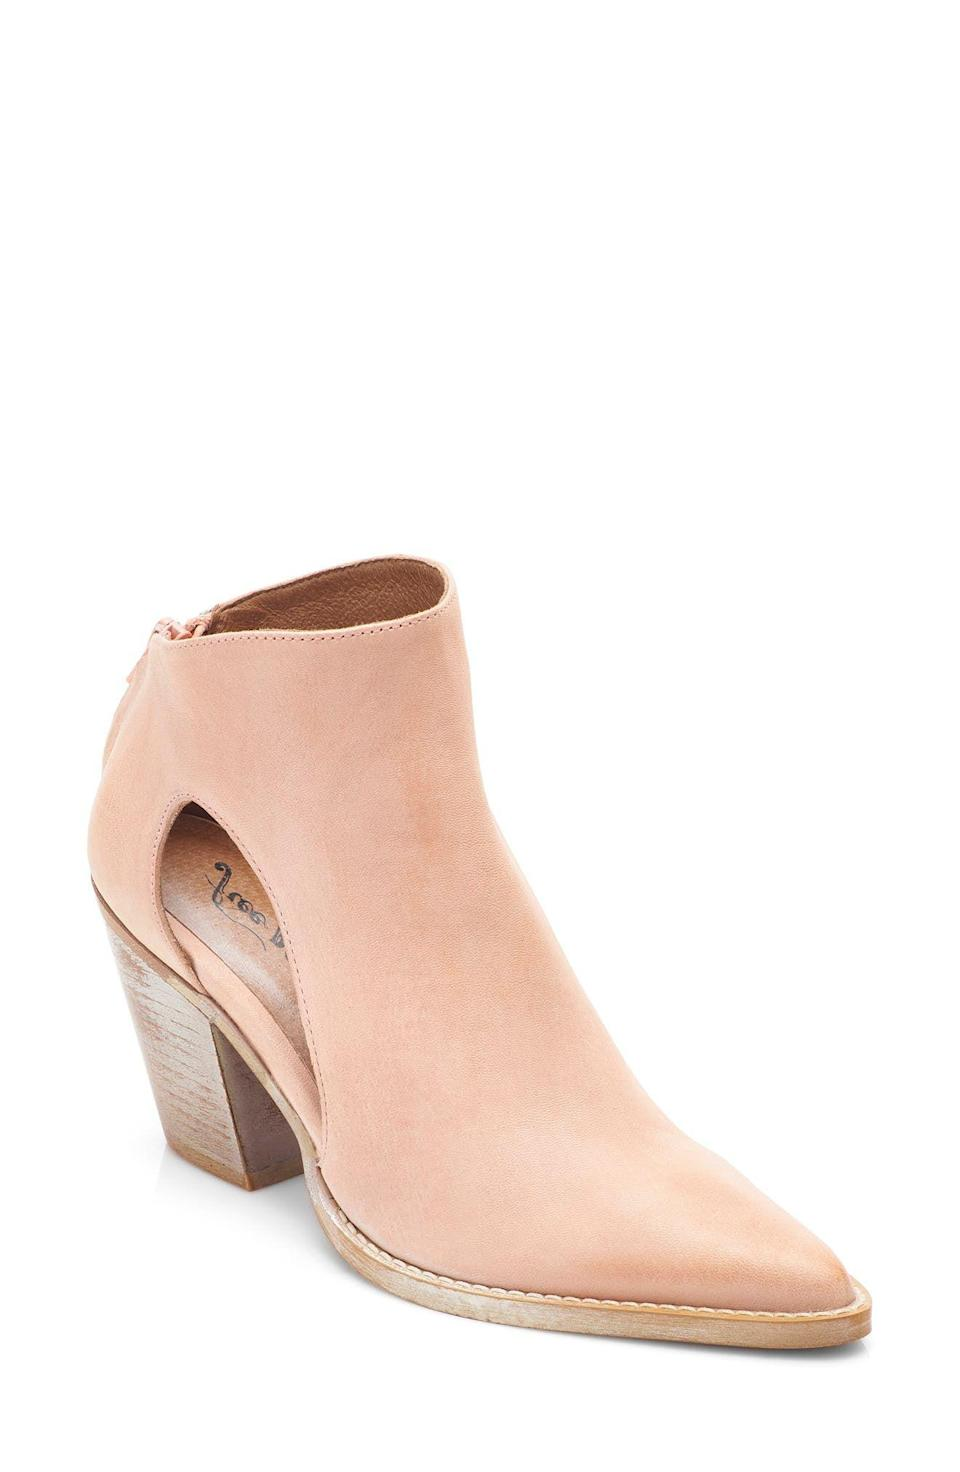 """<p><strong>FREE PEOPLE</strong></p><p>nordstrom.com</p><p><strong>$178.00</strong></p><p><a href=""""https://go.redirectingat.com?id=74968X1596630&url=https%3A%2F%2Fwww.nordstrom.com%2Fs%2Ffree-people-wilder-pointed-toe-bootie-women%2F5935838&sref=https%3A%2F%2Fwww.goodhousekeeping.com%2Fclothing%2Fg36292464%2Fbest-summer-boots%2F"""" rel=""""nofollow noopener"""" target=""""_blank"""" data-ylk=""""slk:Shop Now"""" class=""""link rapid-noclick-resp"""">Shop Now</a></p><p>Cut-out boots are a lightweight option that also allow for great airflow. Free People is known for its elevated bohemian designs. These boots are made with <strong>supple leather for a super soft feel. </strong>Note that these boots are available in whole sizes only. </p>"""